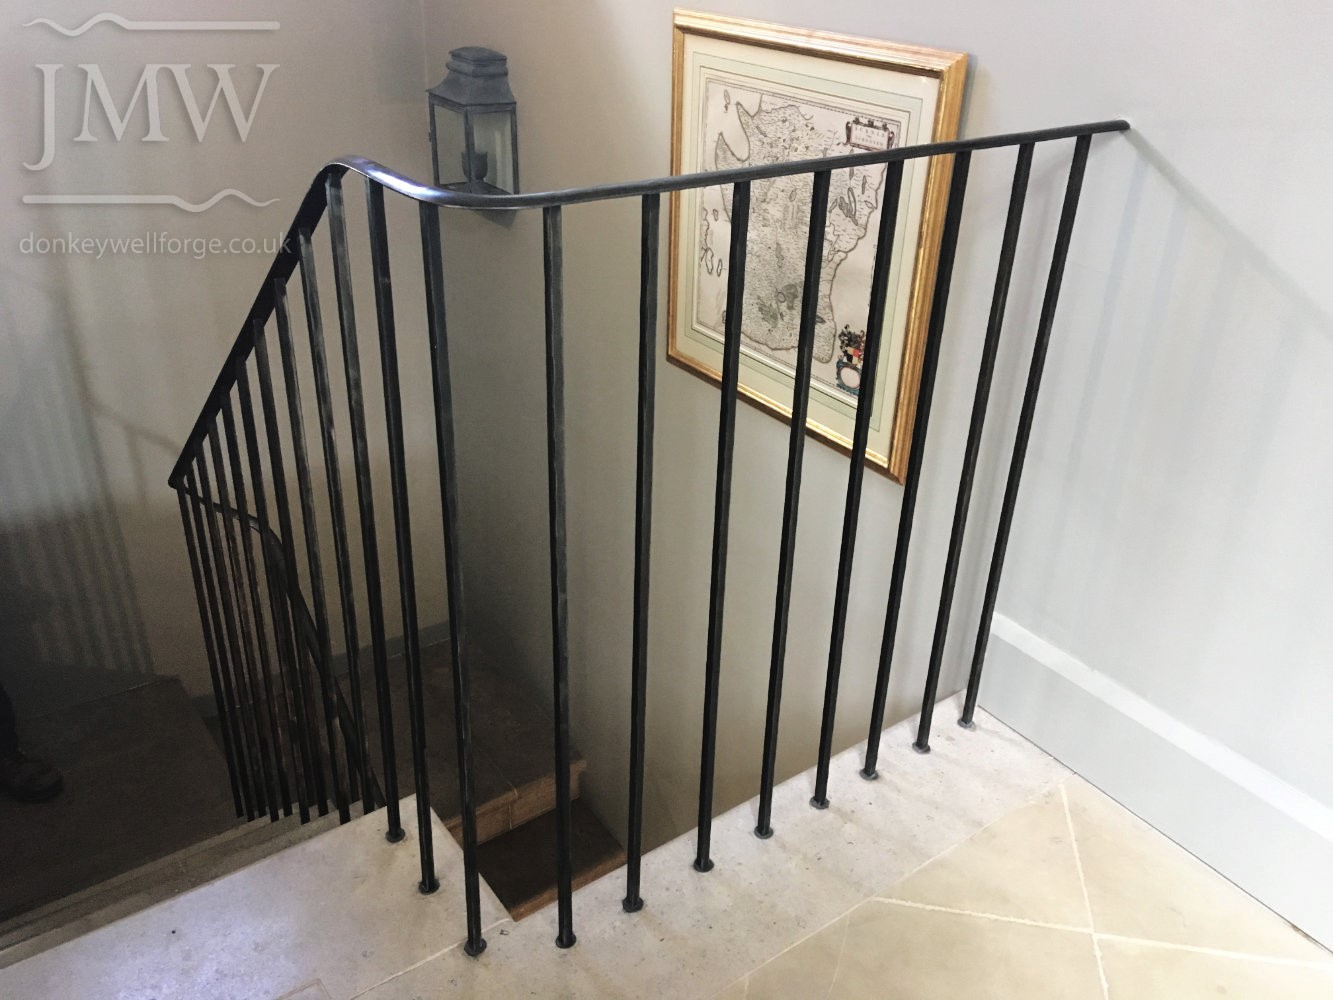 balustrades-stair-handrail-iron-country-house-riveted-forged